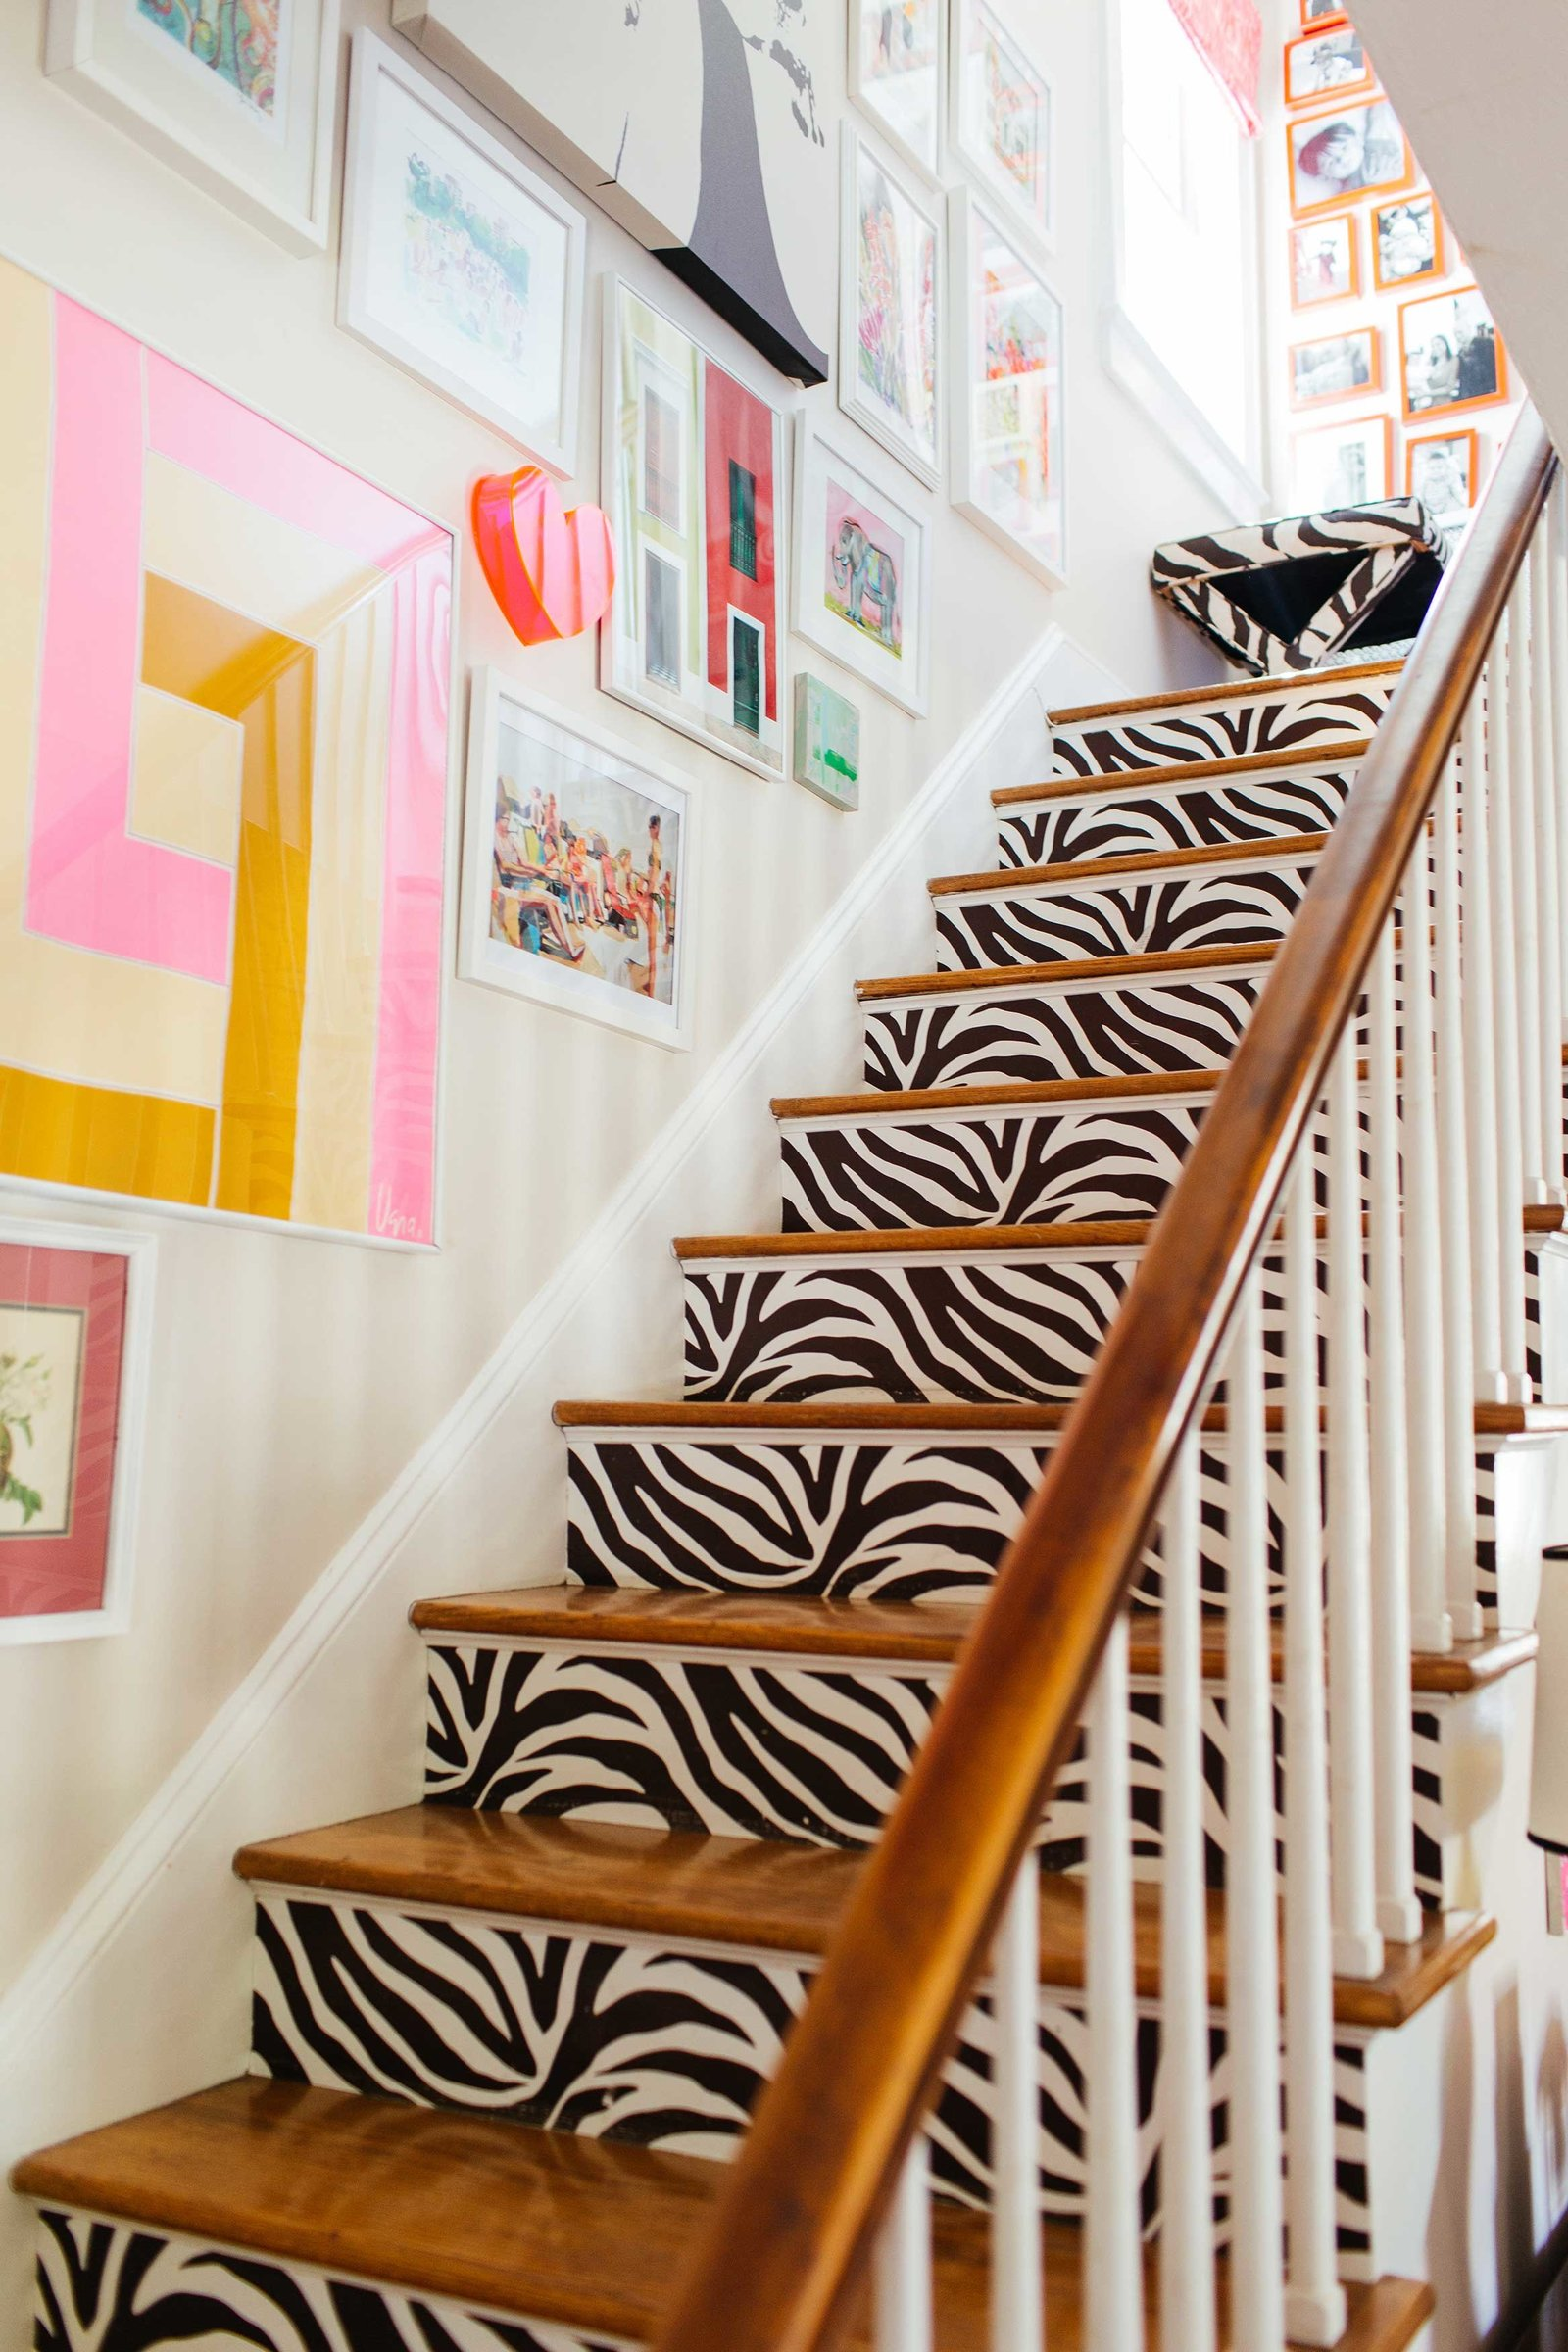 A zebra staircase with a gallery wall of art and photos.